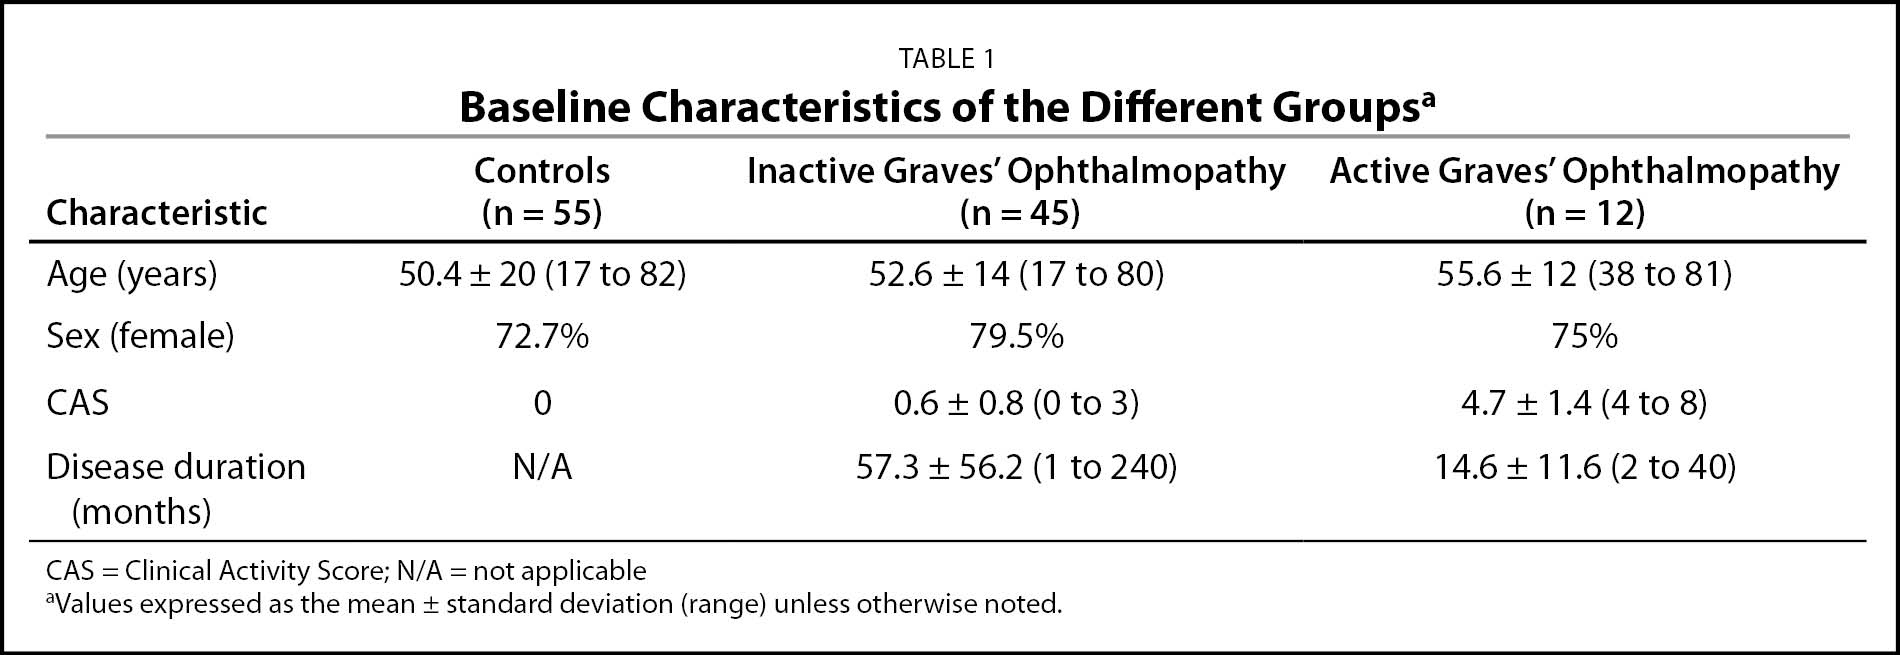 Baseline Characteristics of the Different Groupsa